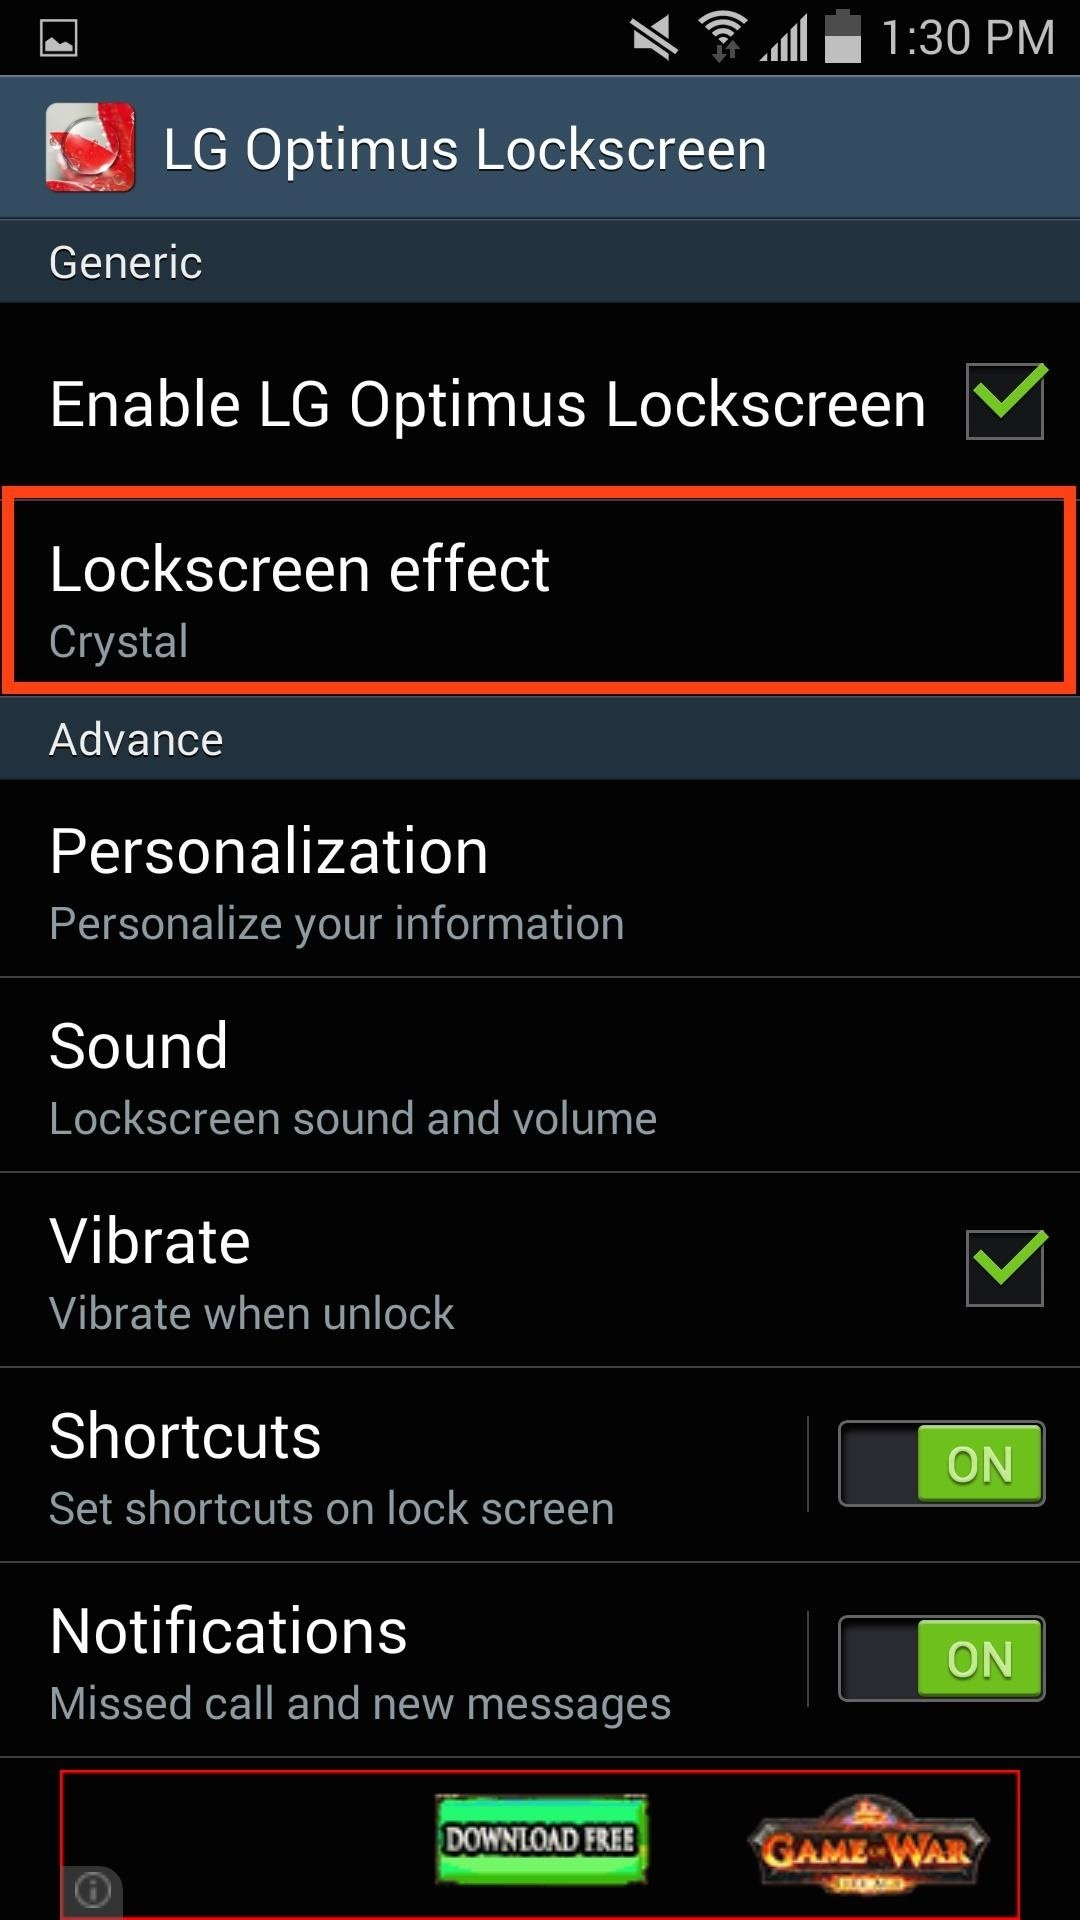 Customize Your Android Lock Screen with New Unlock Effects & Customizations